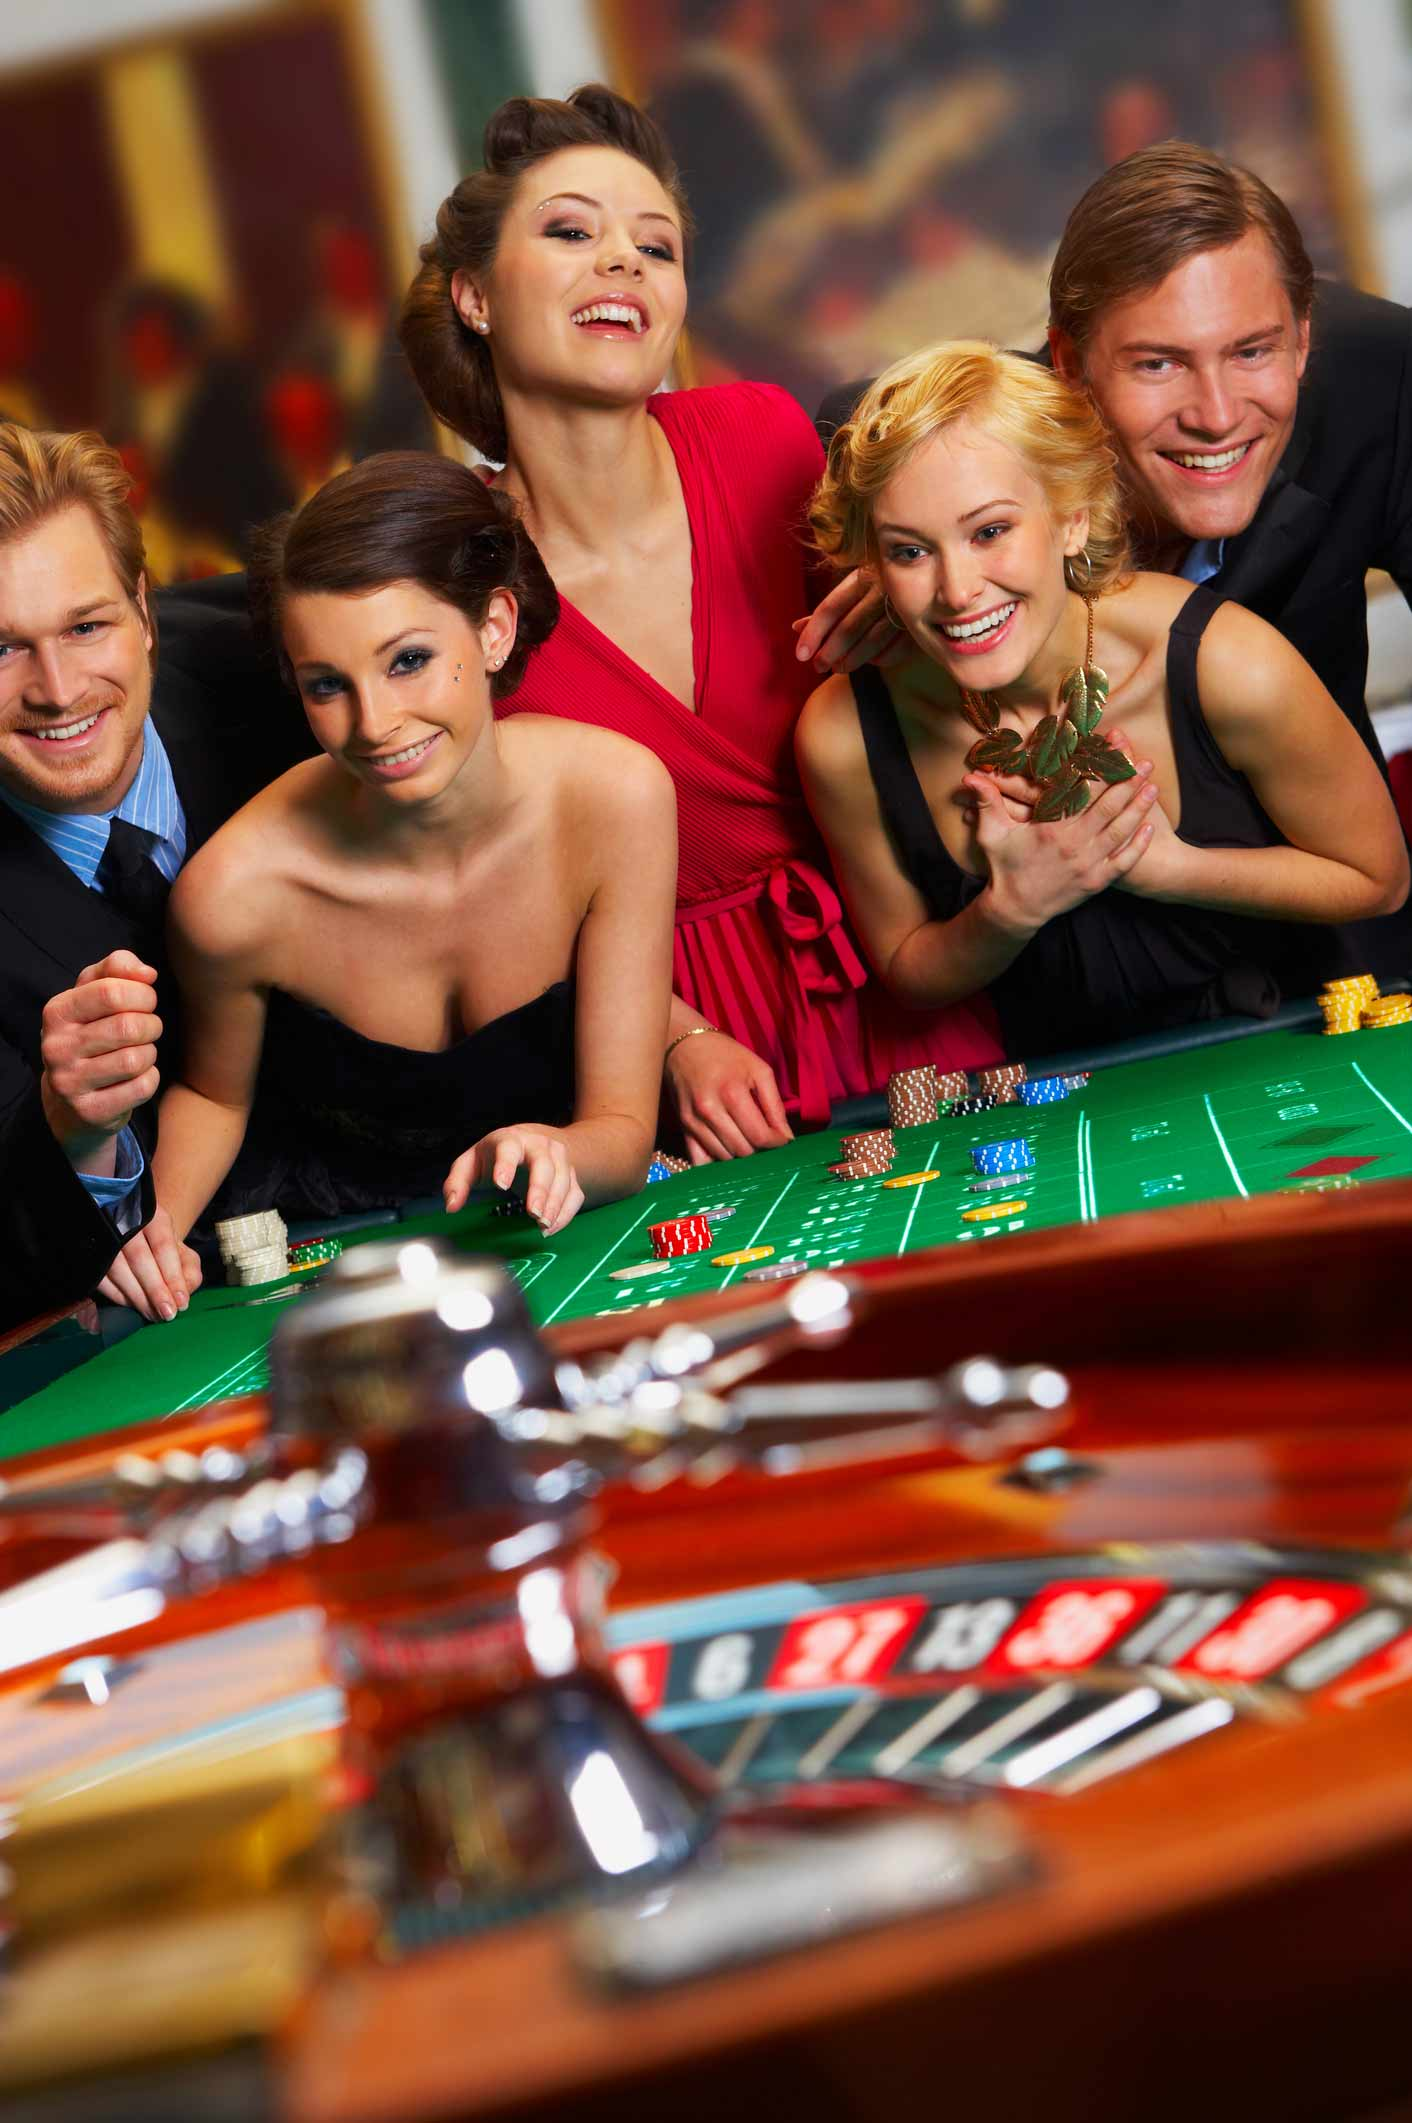 Image result for gambling roulette